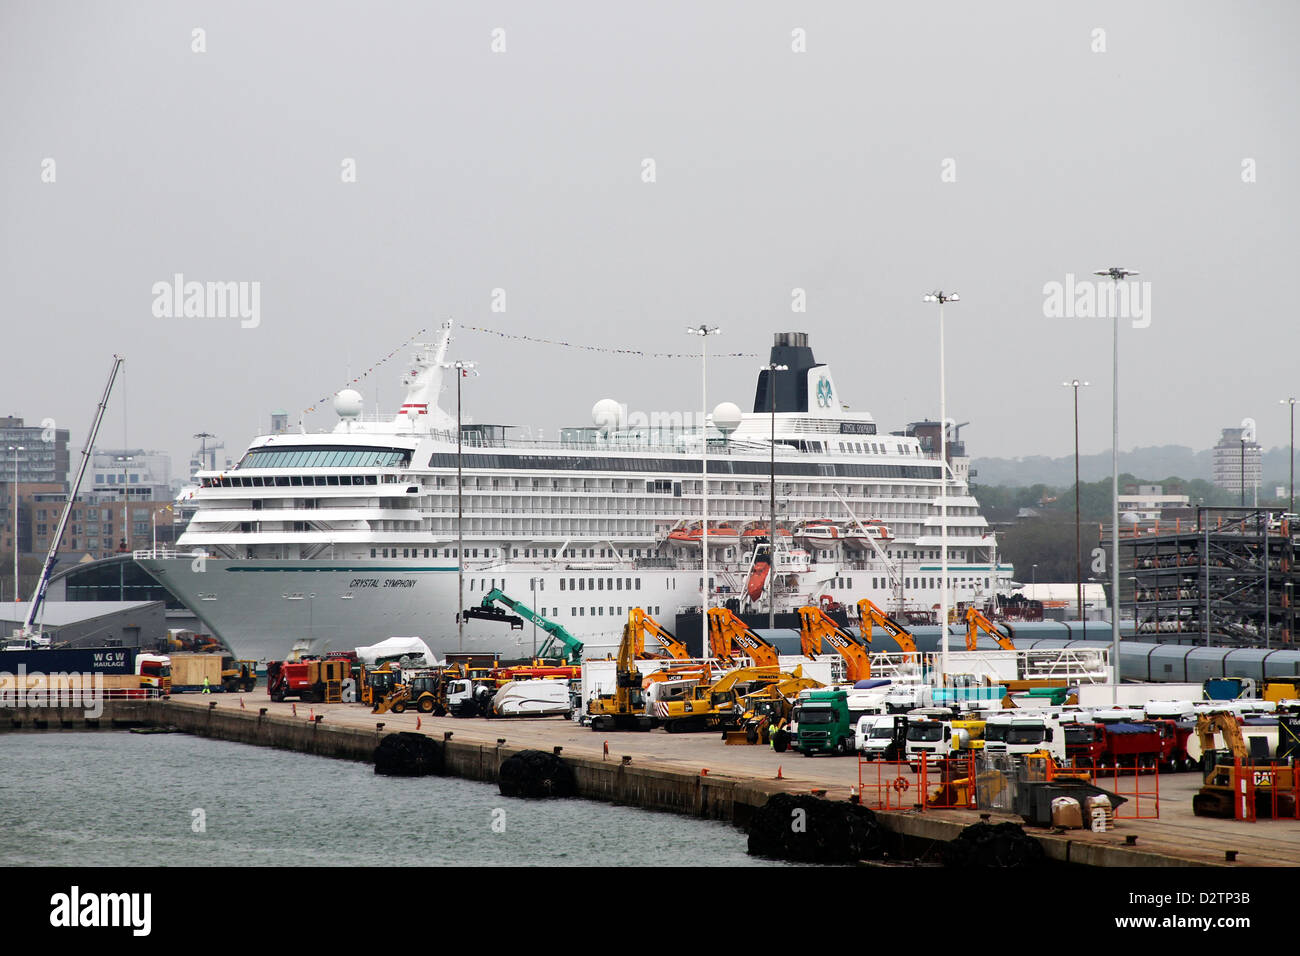 Crystal Symphony  cruise liner docked at Southampton port - Stock Image